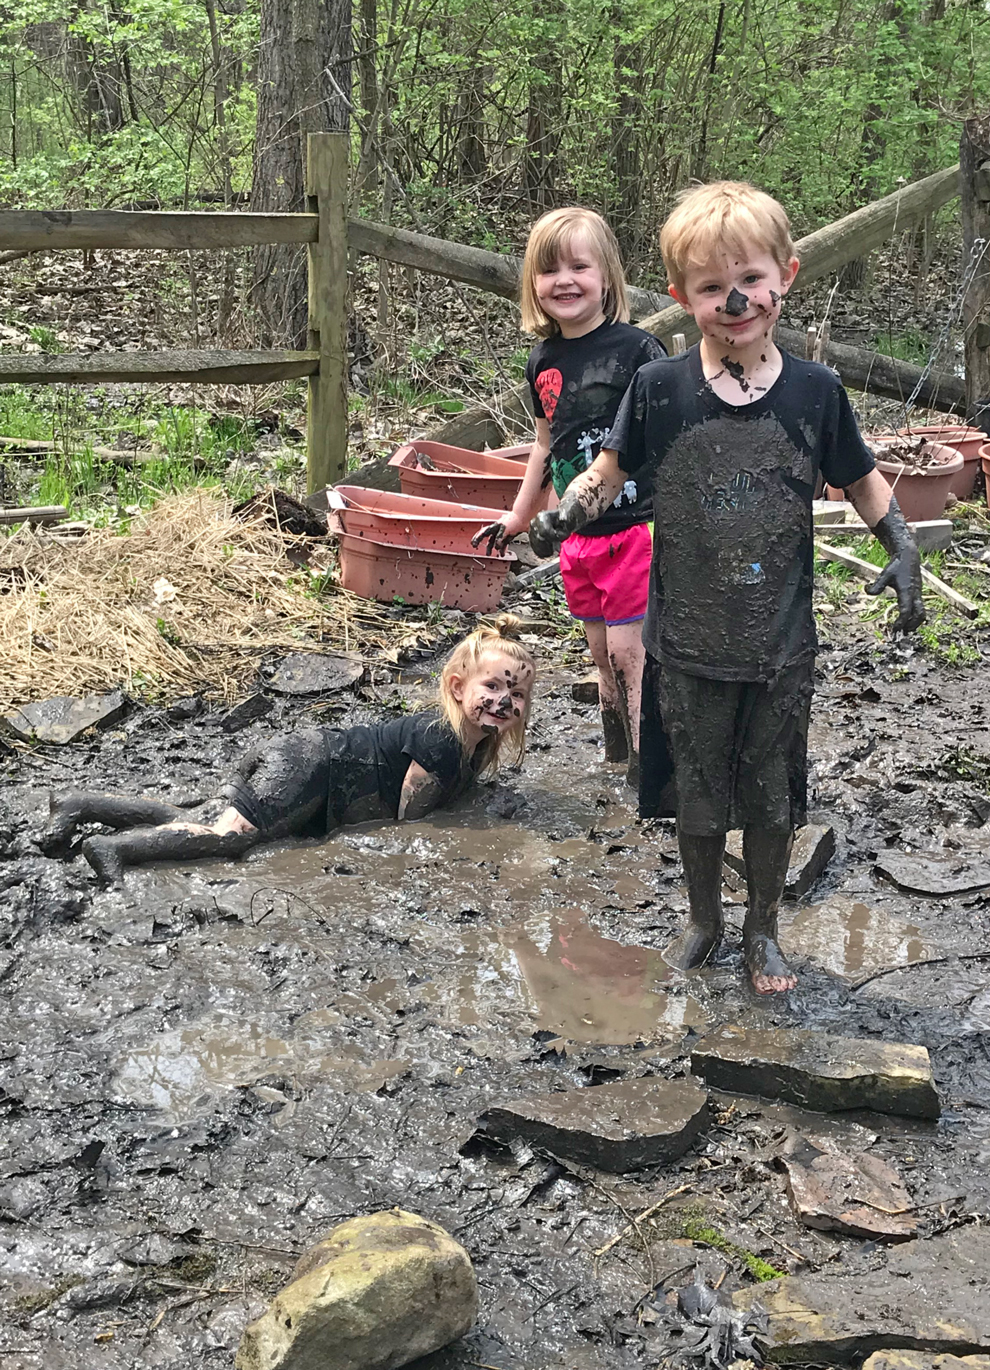 Three preschoolers get muddy in the natural play area at Blendon Woods.